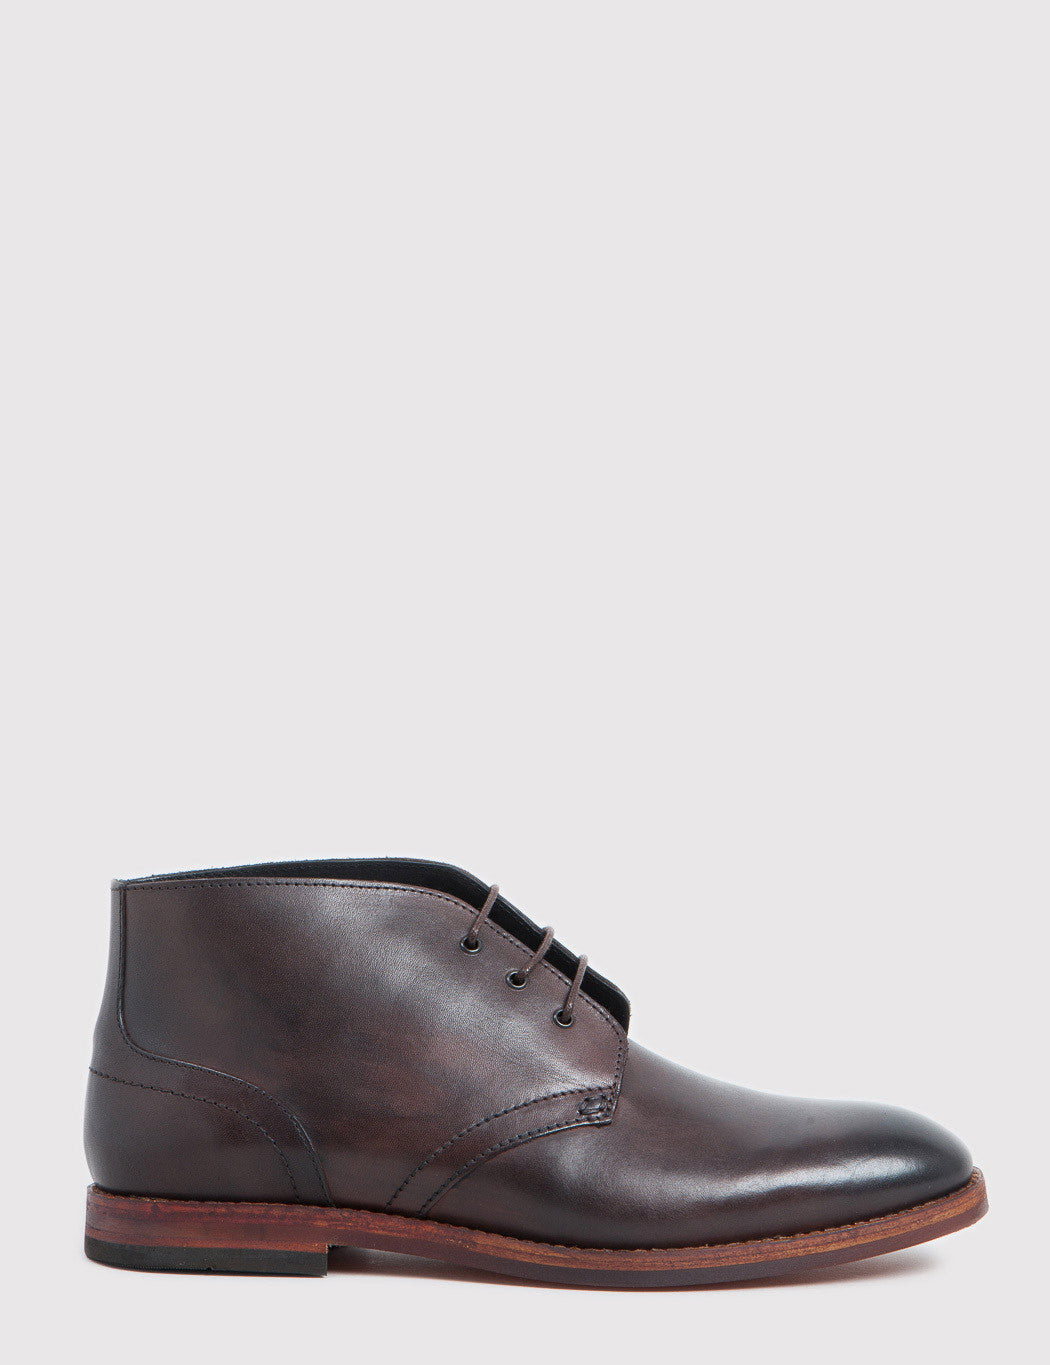 Hudson Houghton 2 Calf Leather Chukka Boots - Brown